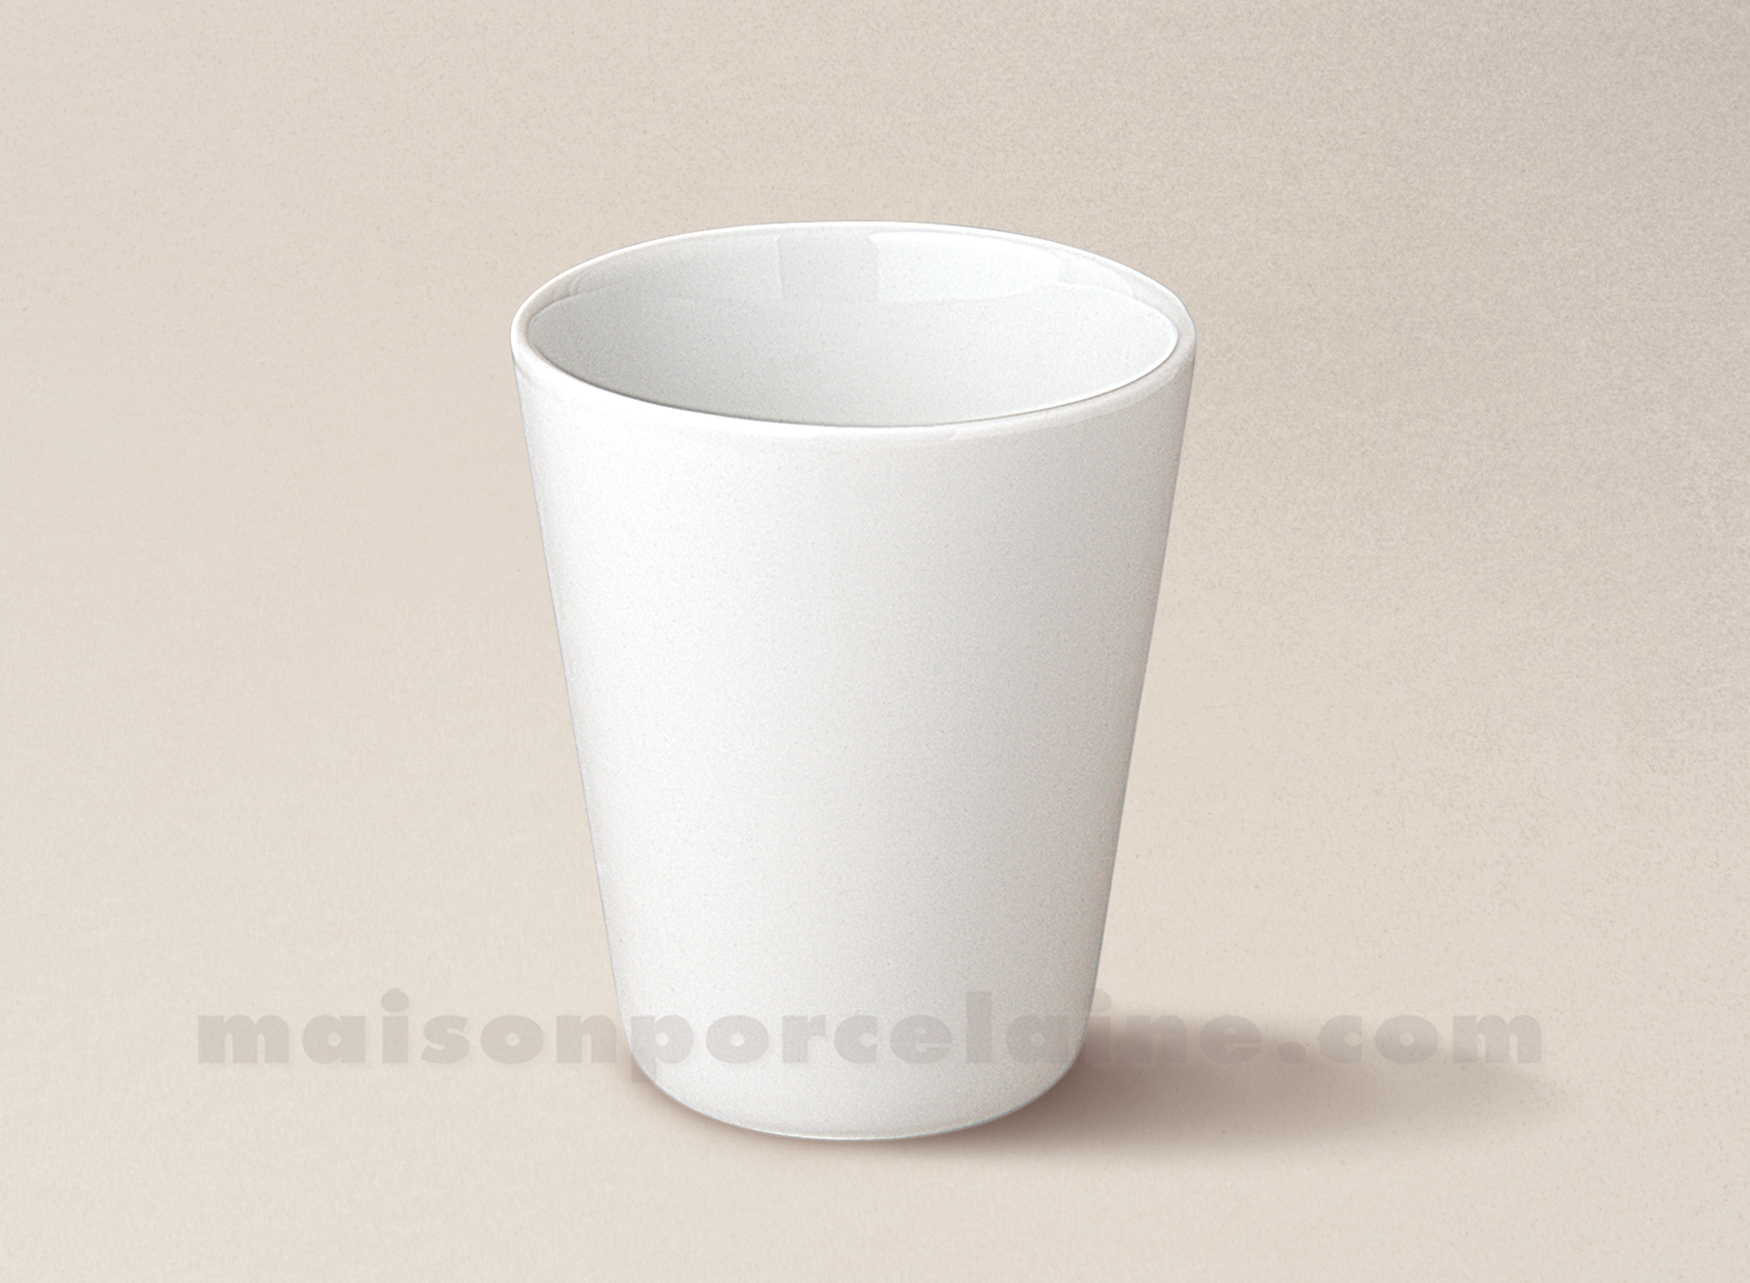 Verre the conique porcelaine blanche 8x7 16cl maison de for Maison de la porcelaine